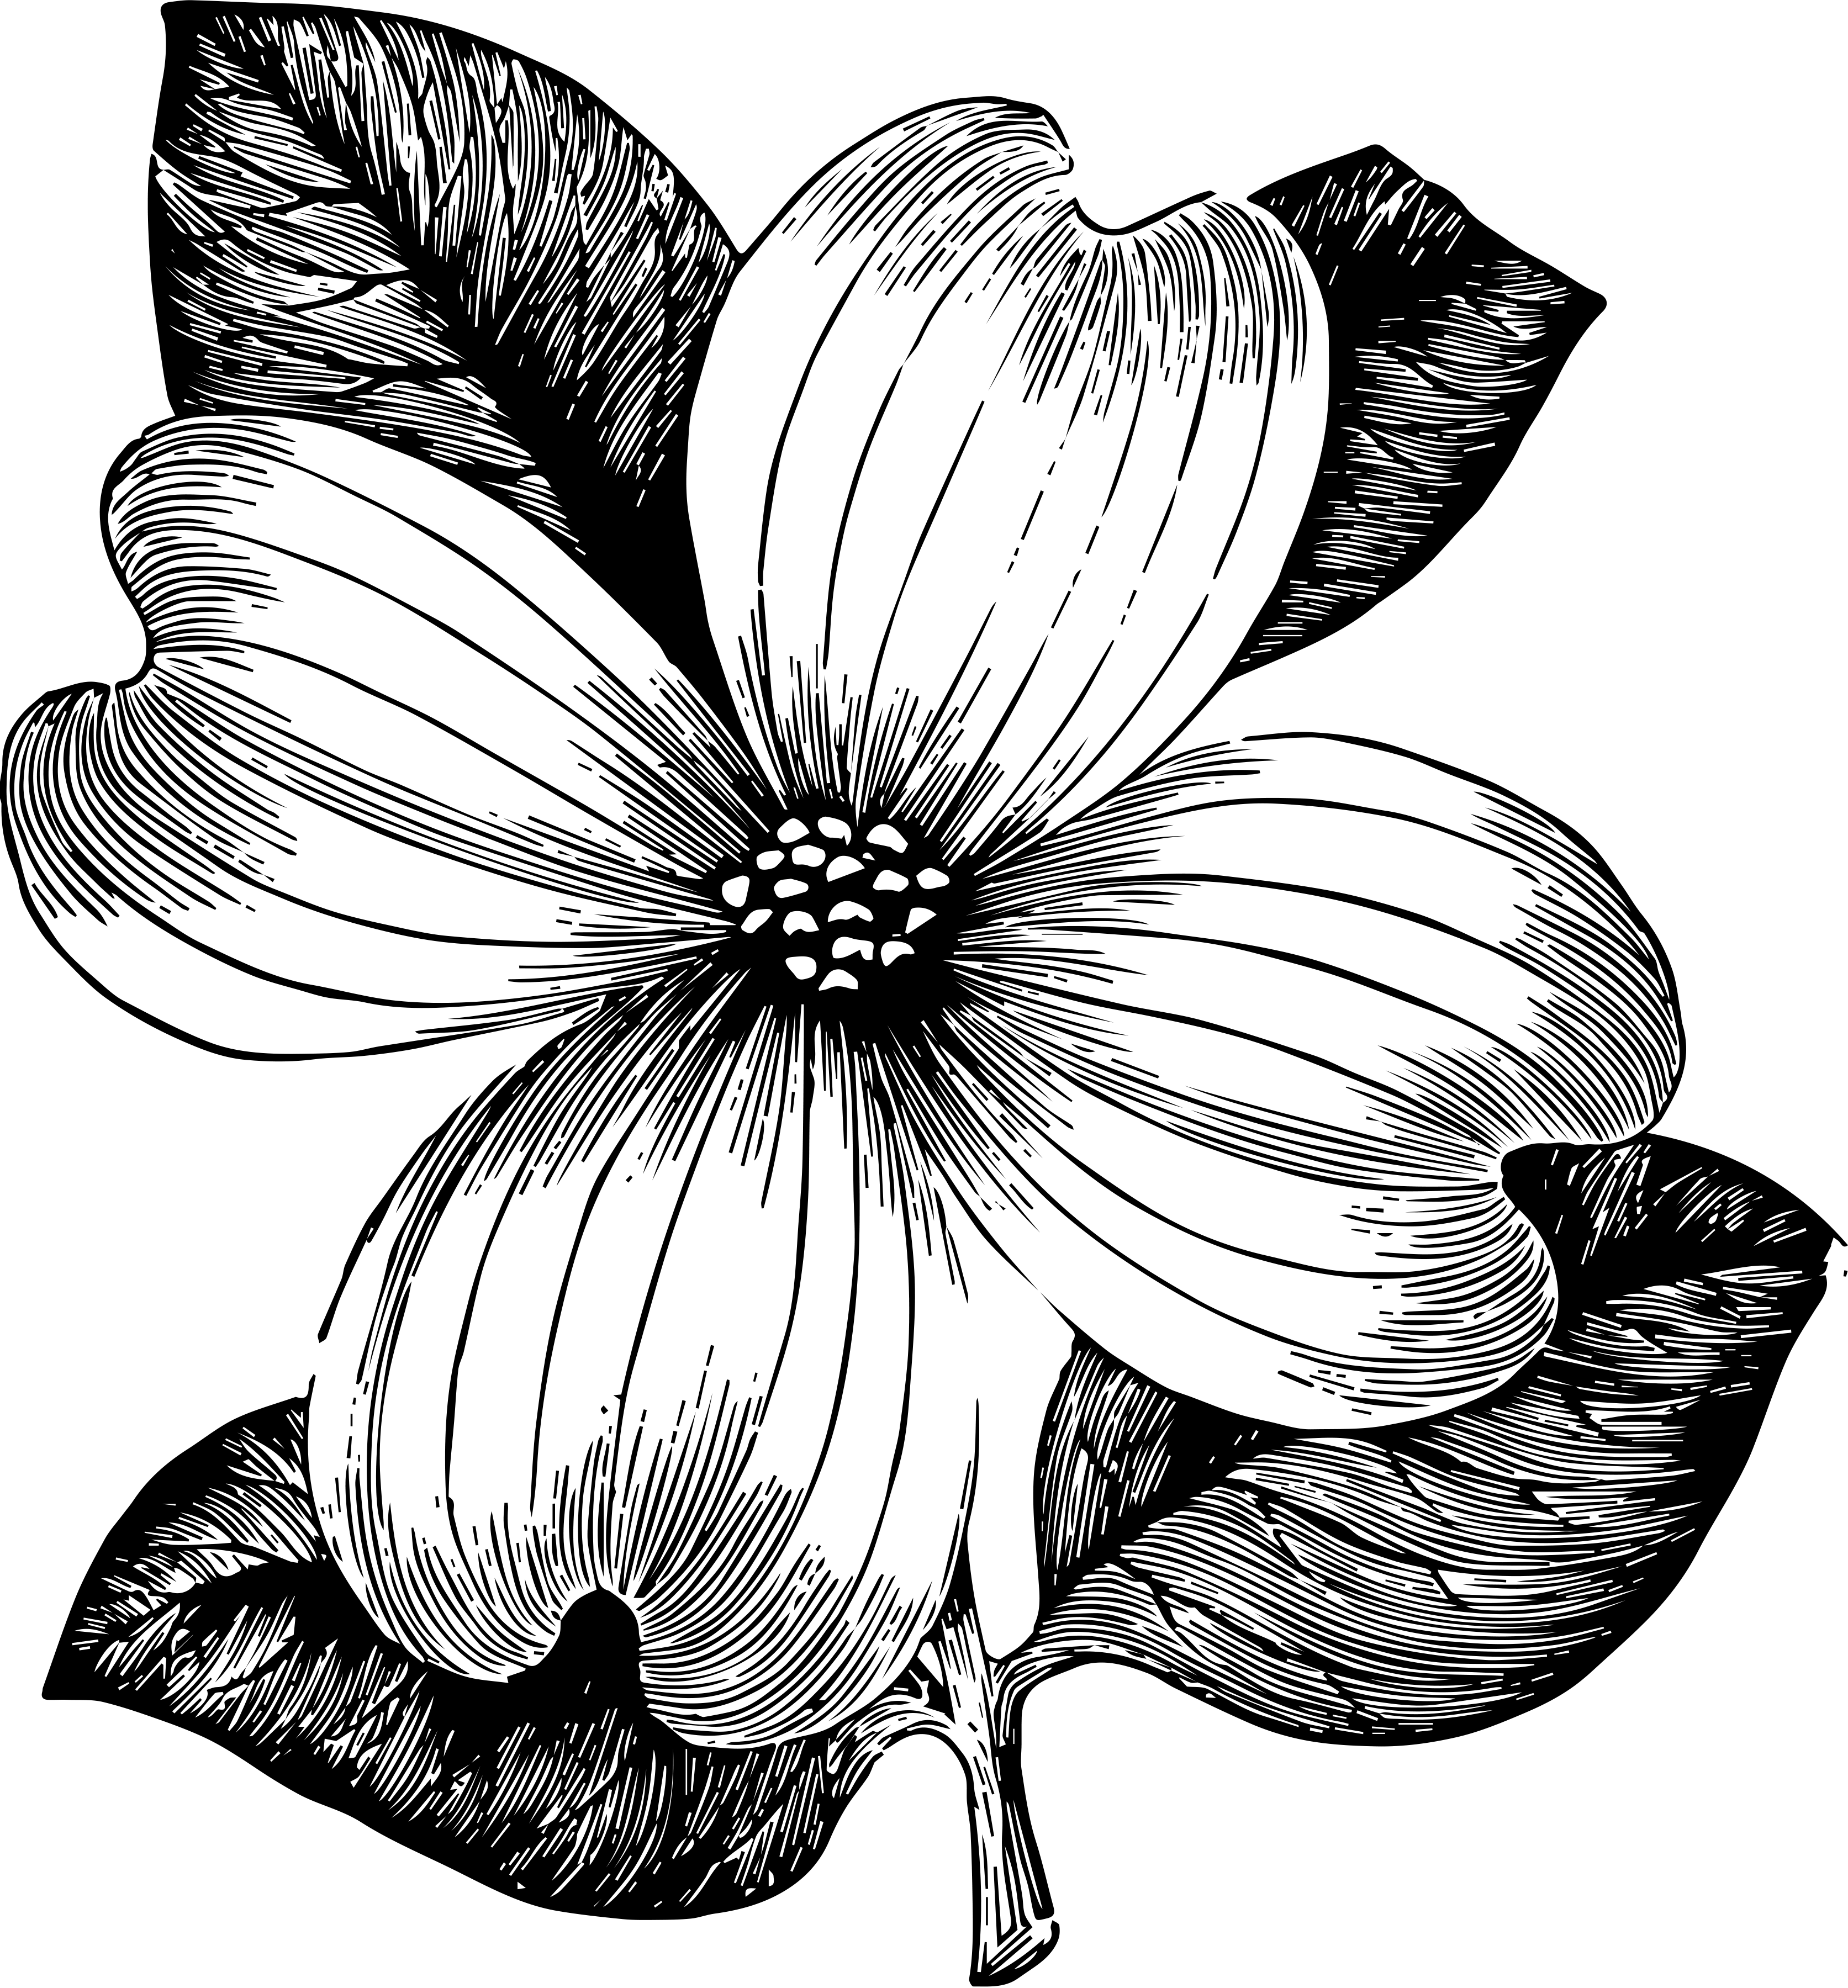 Dogwood flower clipart image transparent download freebie: commercial use flower clipart – HG Designs image transparent download